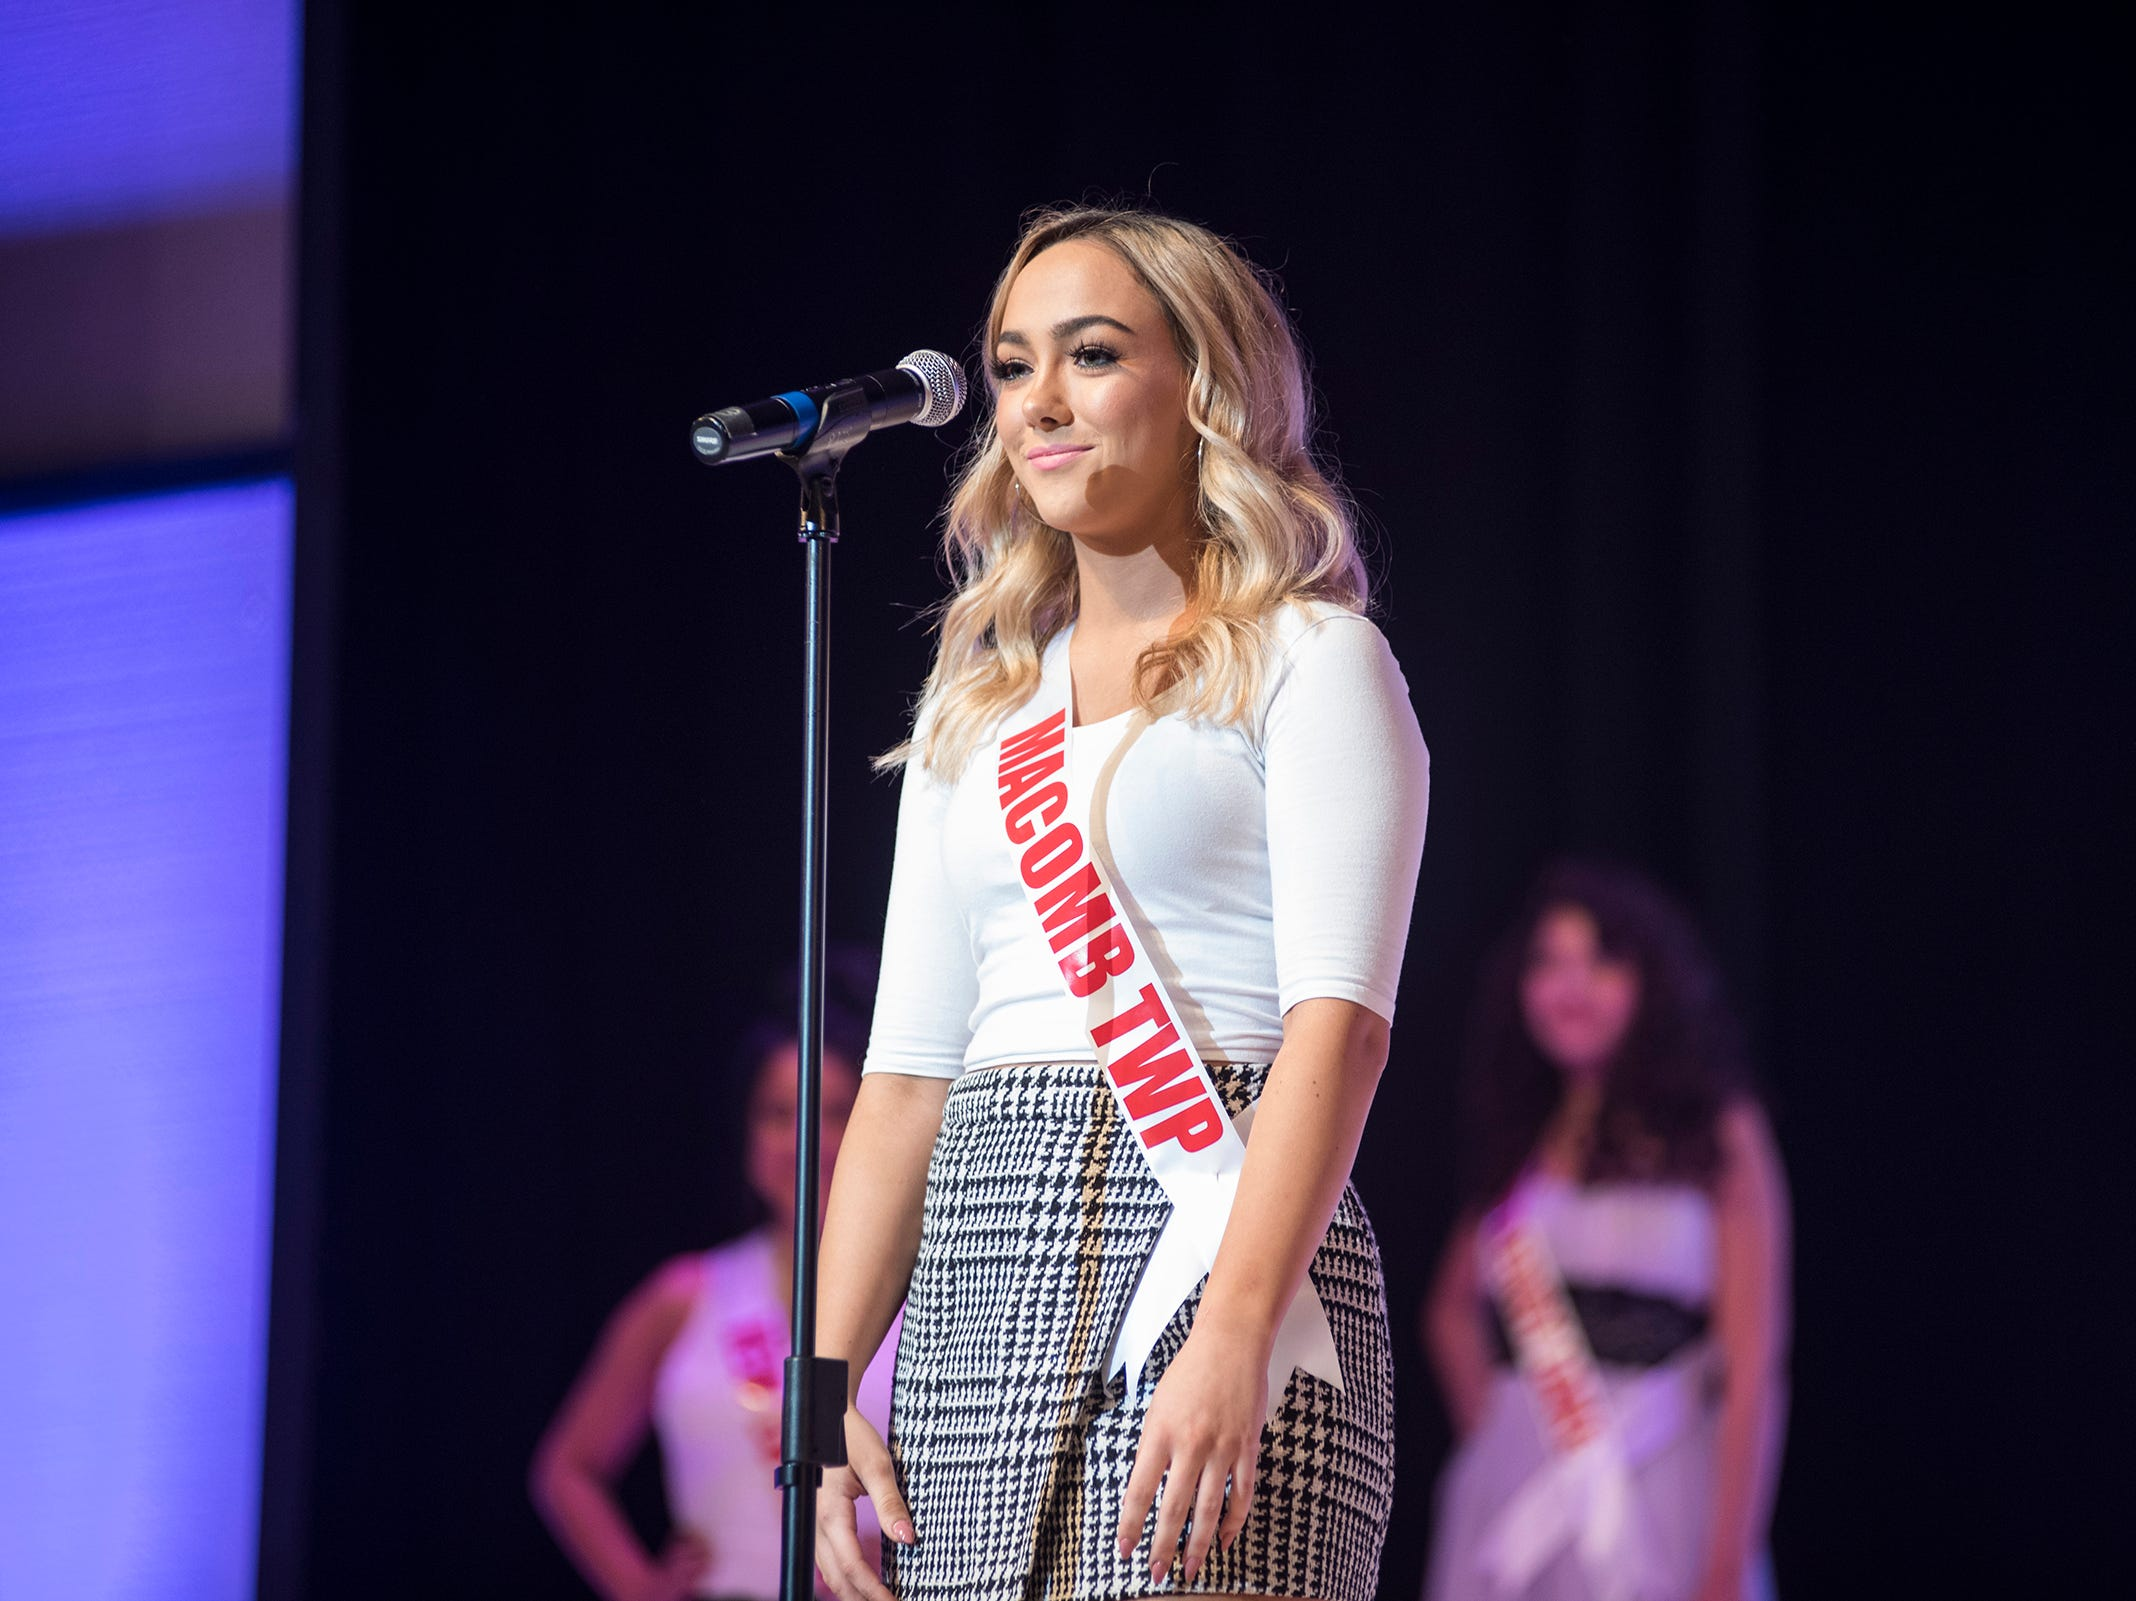 Miss Macomb Township Teen Grace Yeoman introduces herself Saturday, Sept. 22, 2018 at the start of the Miss Michigan Teen USA competition at McMorran Theater.